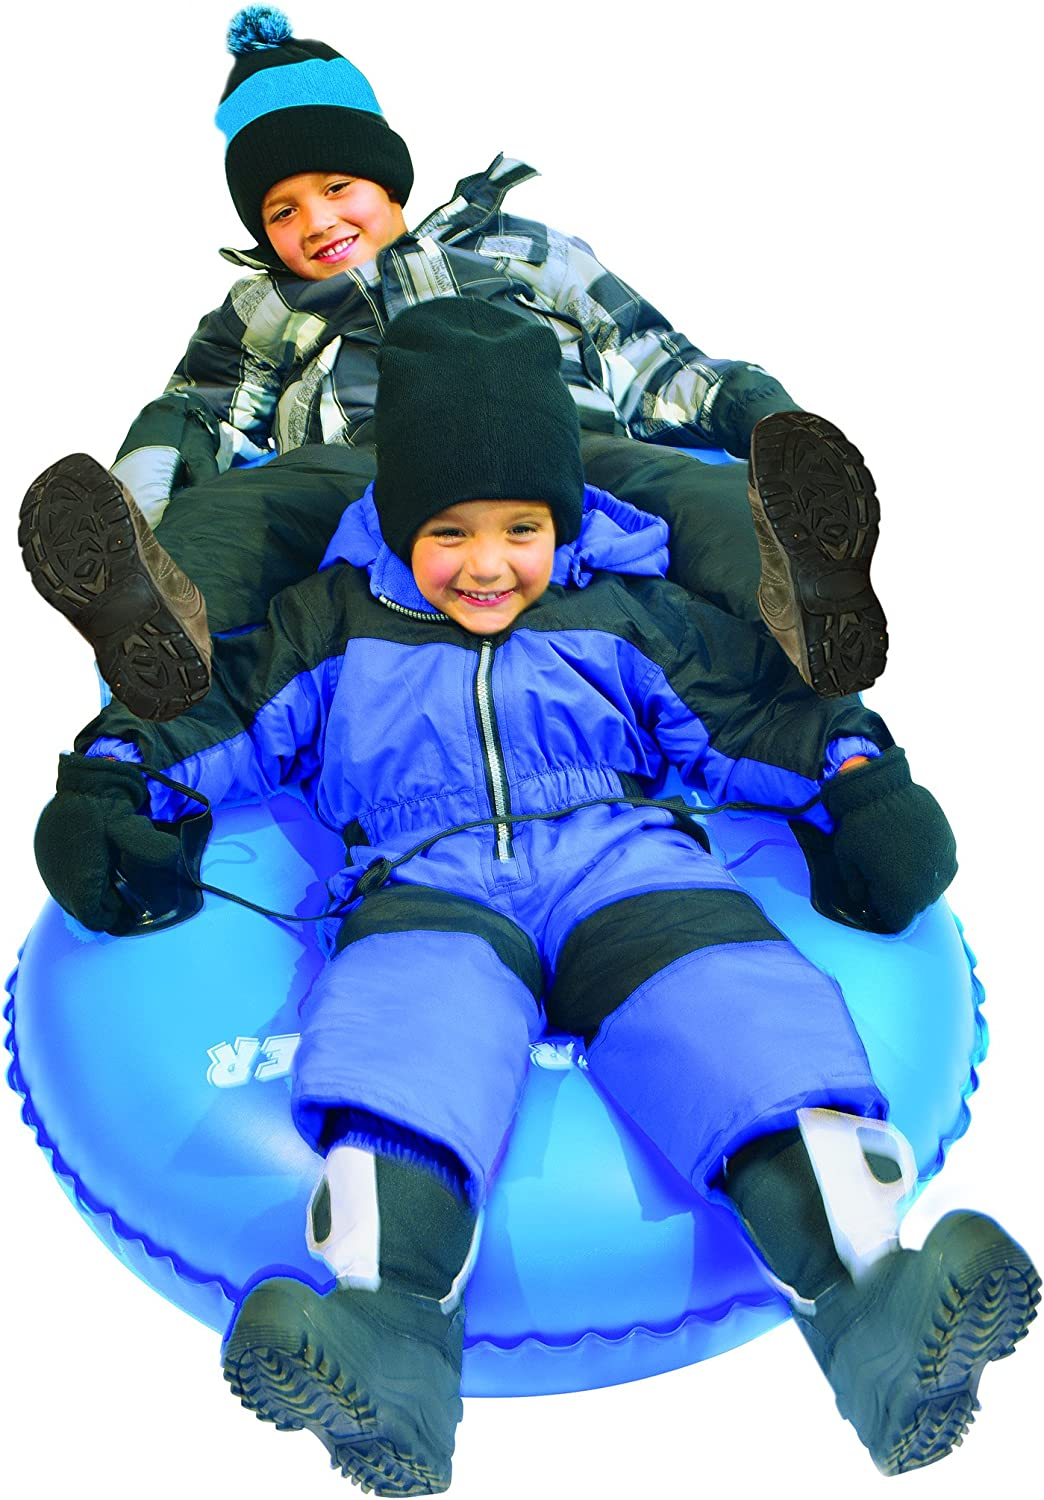 Slippery Racer Airdual Inflatable Snow Tube Sled, bluee